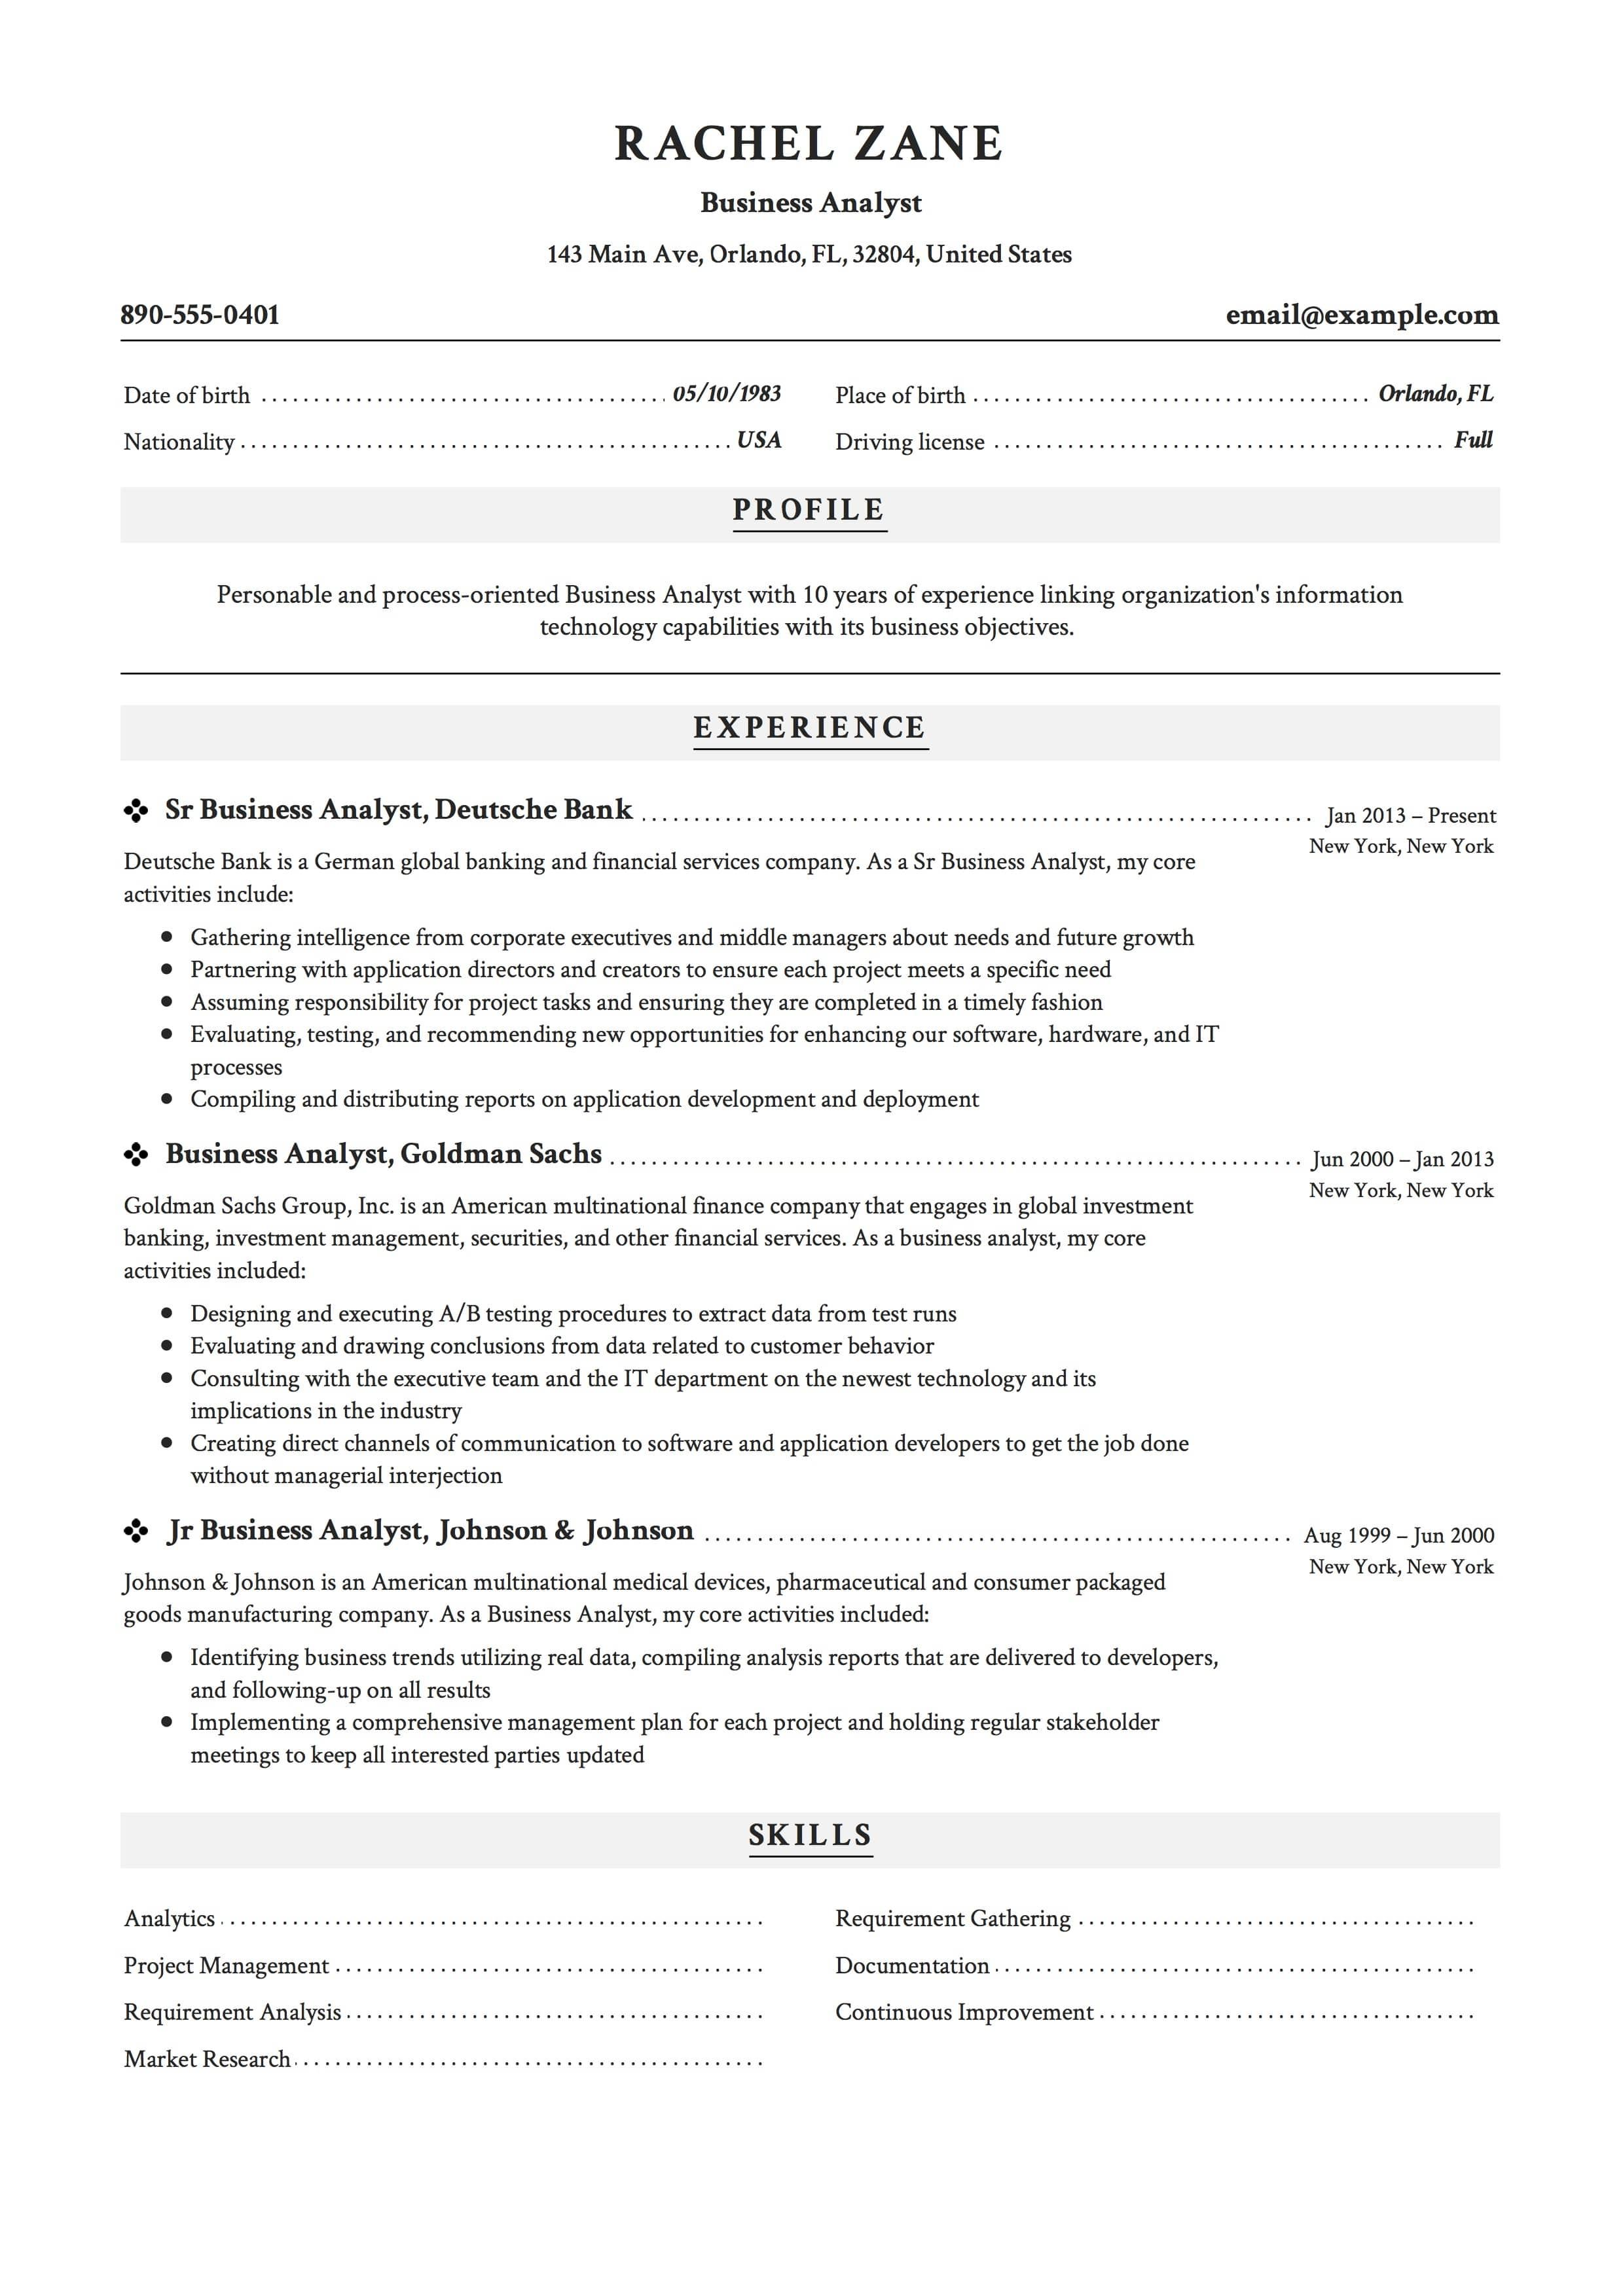 77 Best Business Analyst Resume Examples 2018 for Pics